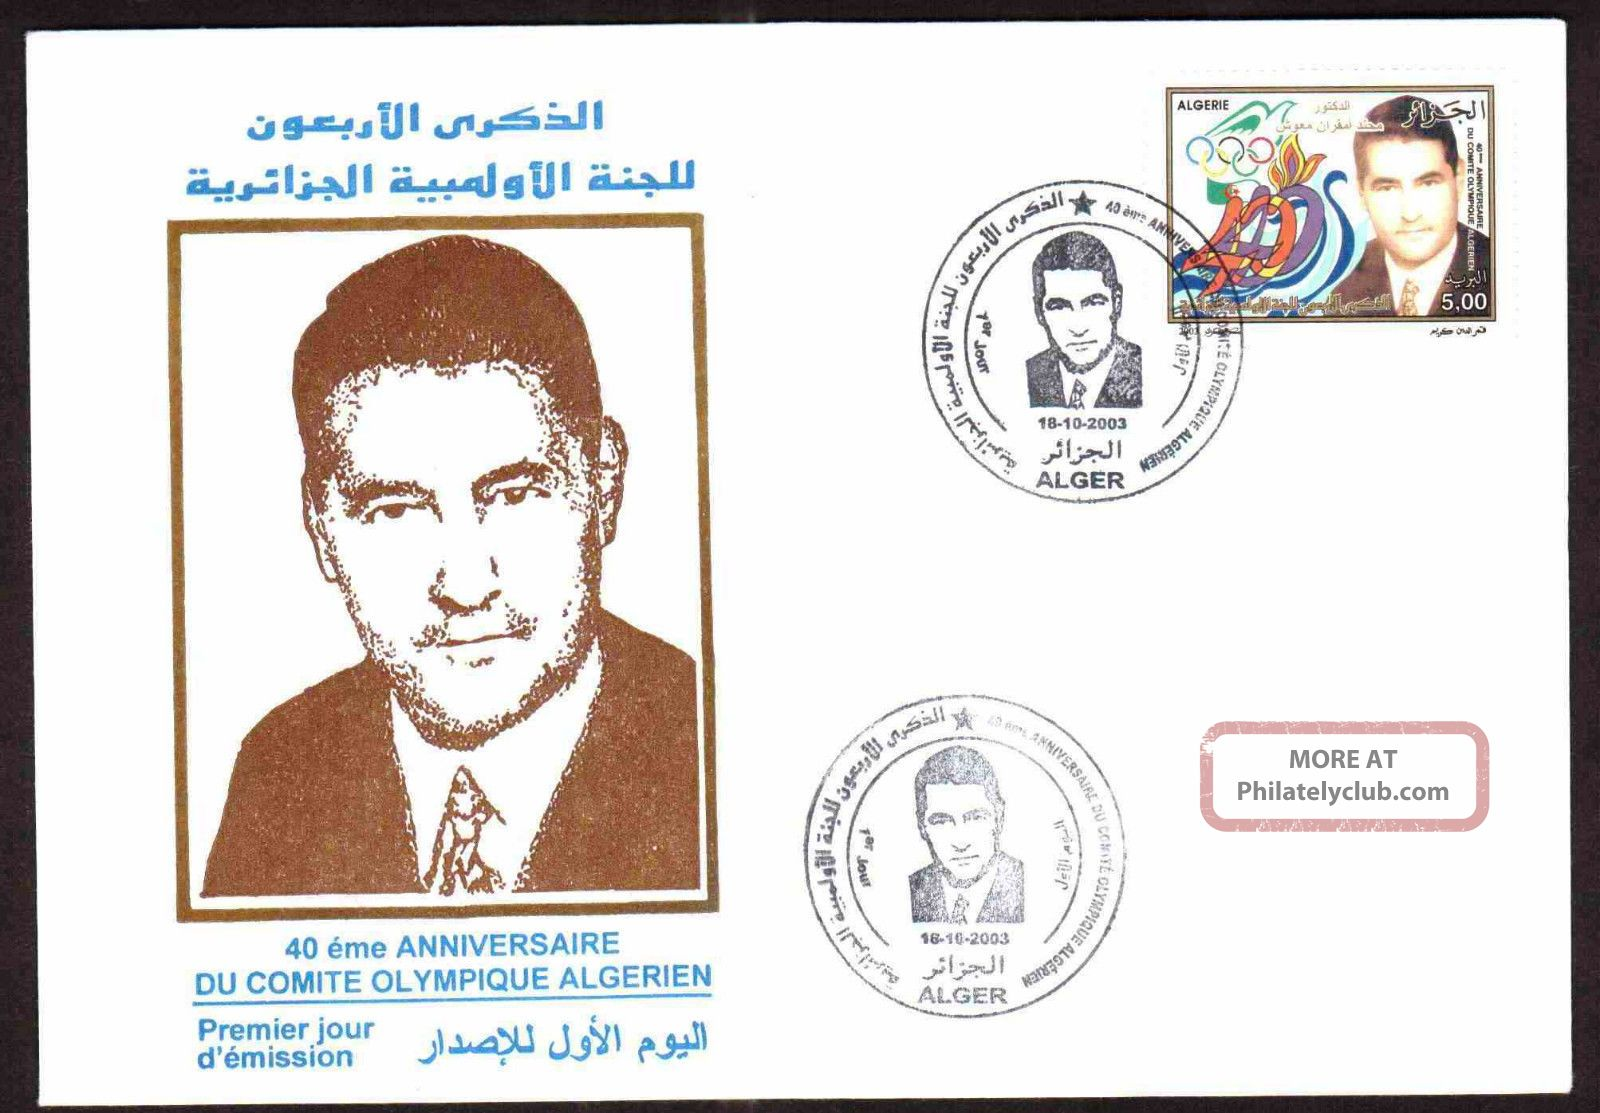 Algeria 2003 Algerian Olympic Committee,  Scott 1288 - Fdc,  Topical Cancel Sports photo